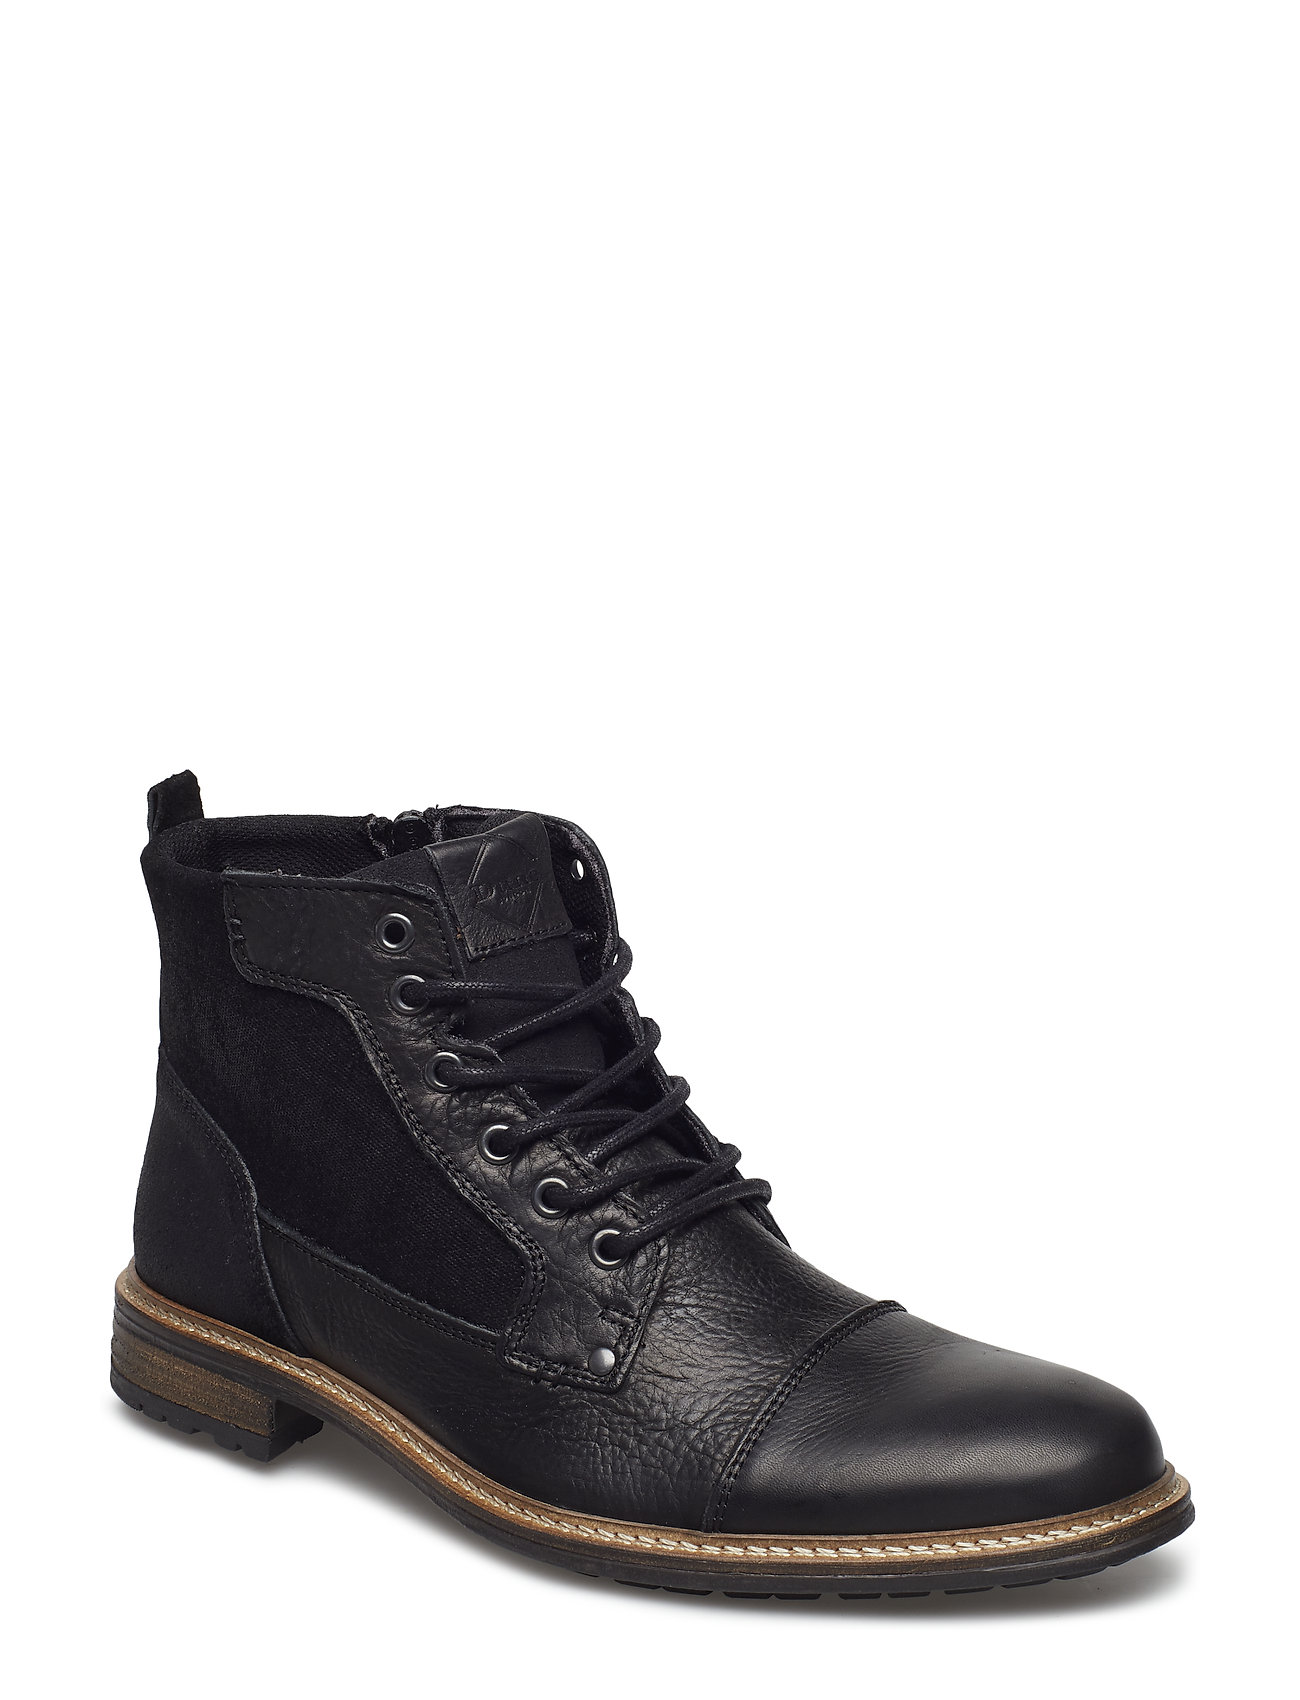 Dune London COUTINHO - BLACK-LEATHER